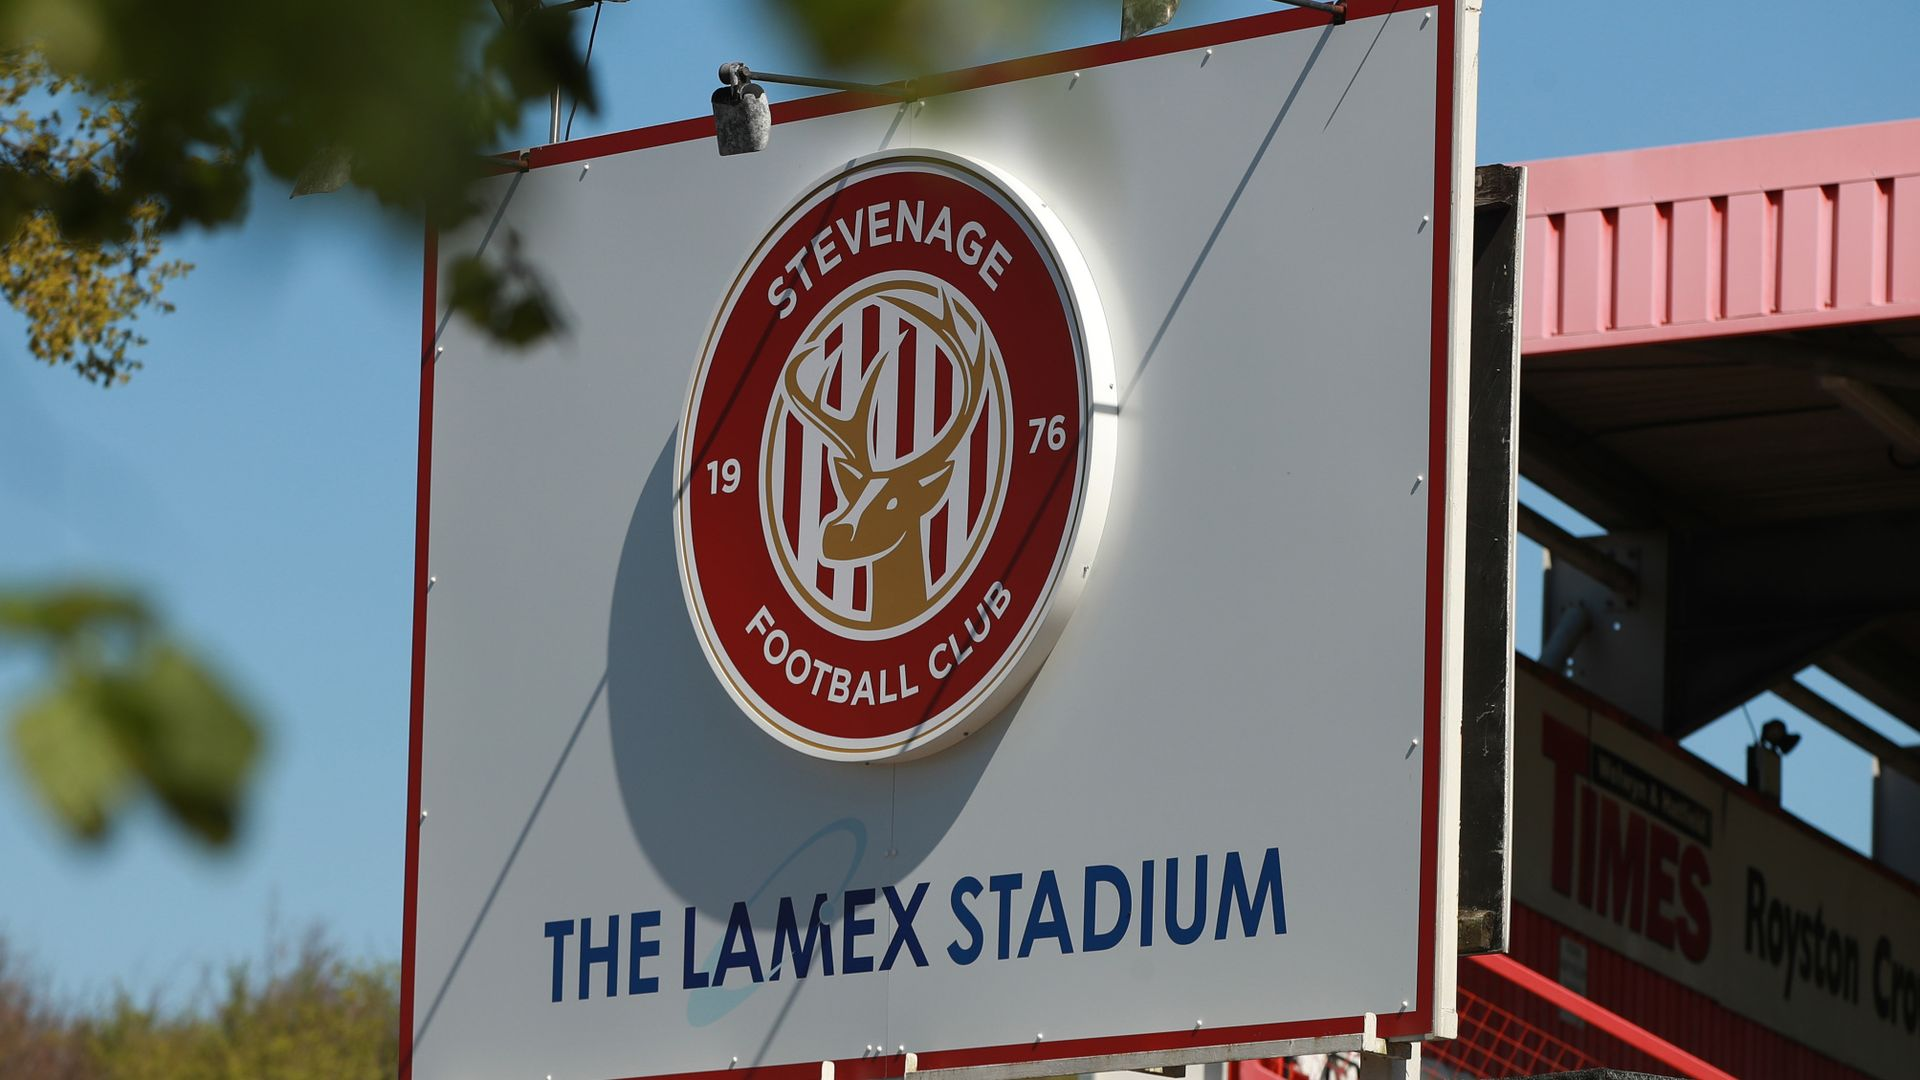 Stevenage chairman: 'No integrity' in using PPG